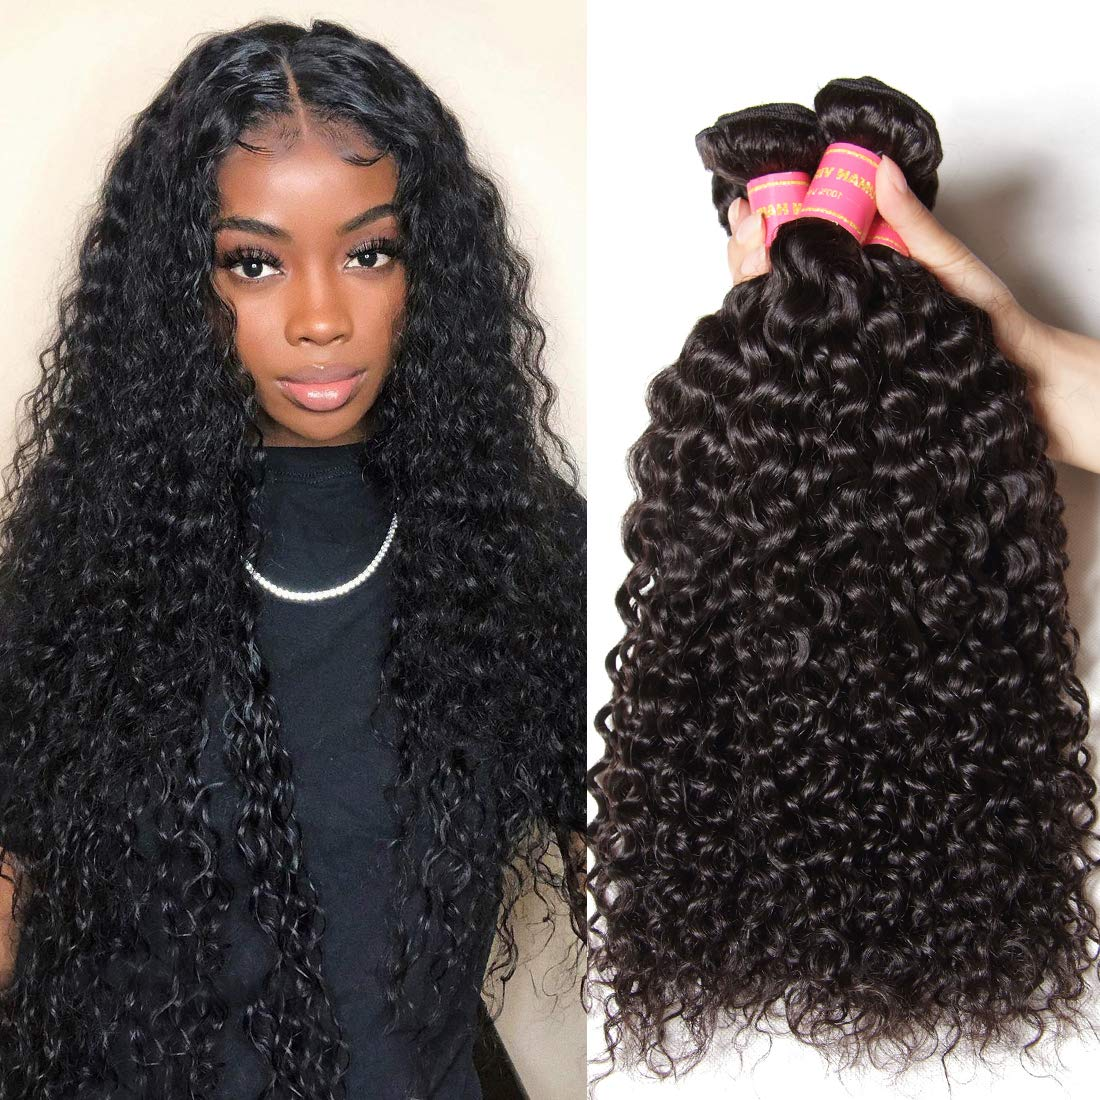 Nadula Hair Young Series 7A Curly Brazilian Bundles Mail order cheap Weave Mail order 3